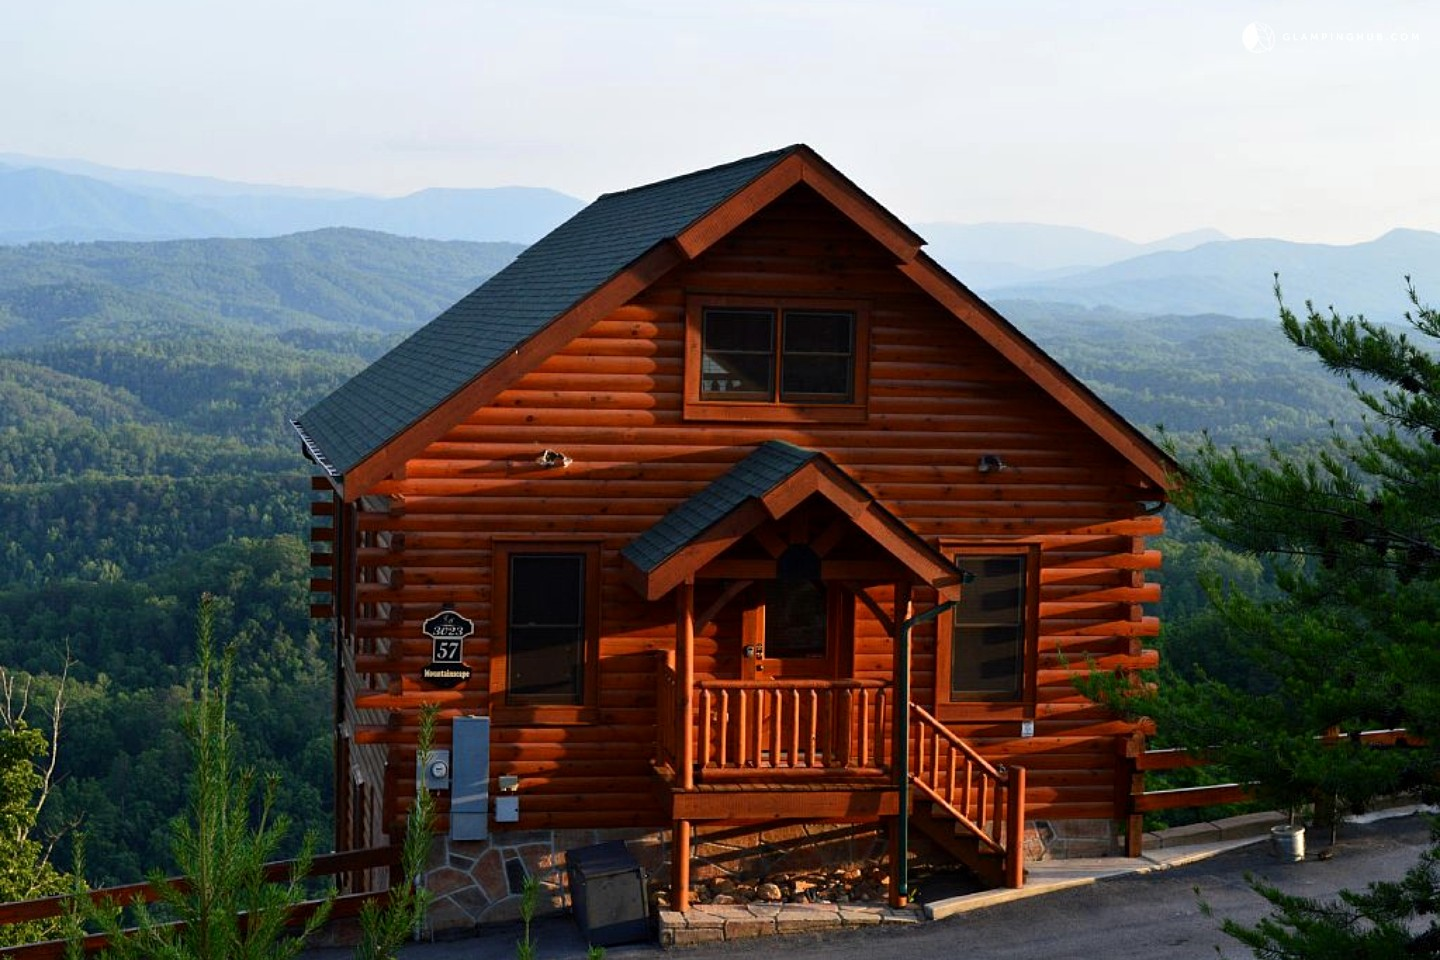 Photo of Beautiful Cabin with Scenic Views over Smoky Mountains, Tennessee